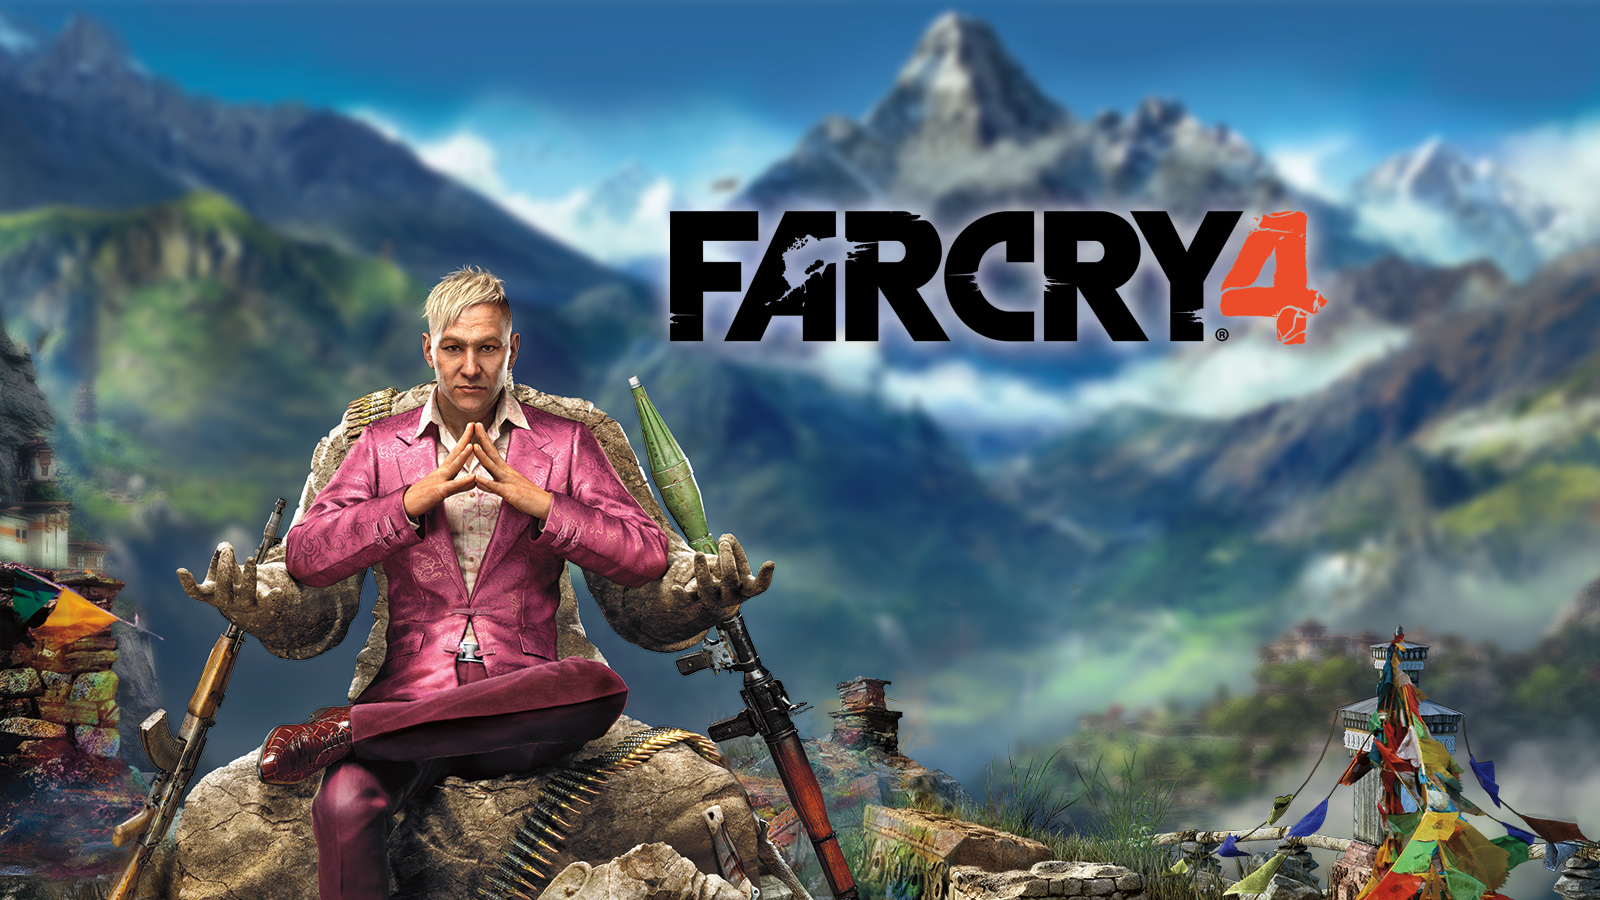 Far Cry 4 High Resolution Wallpapers (Stormy Mullenax, 1600x900)